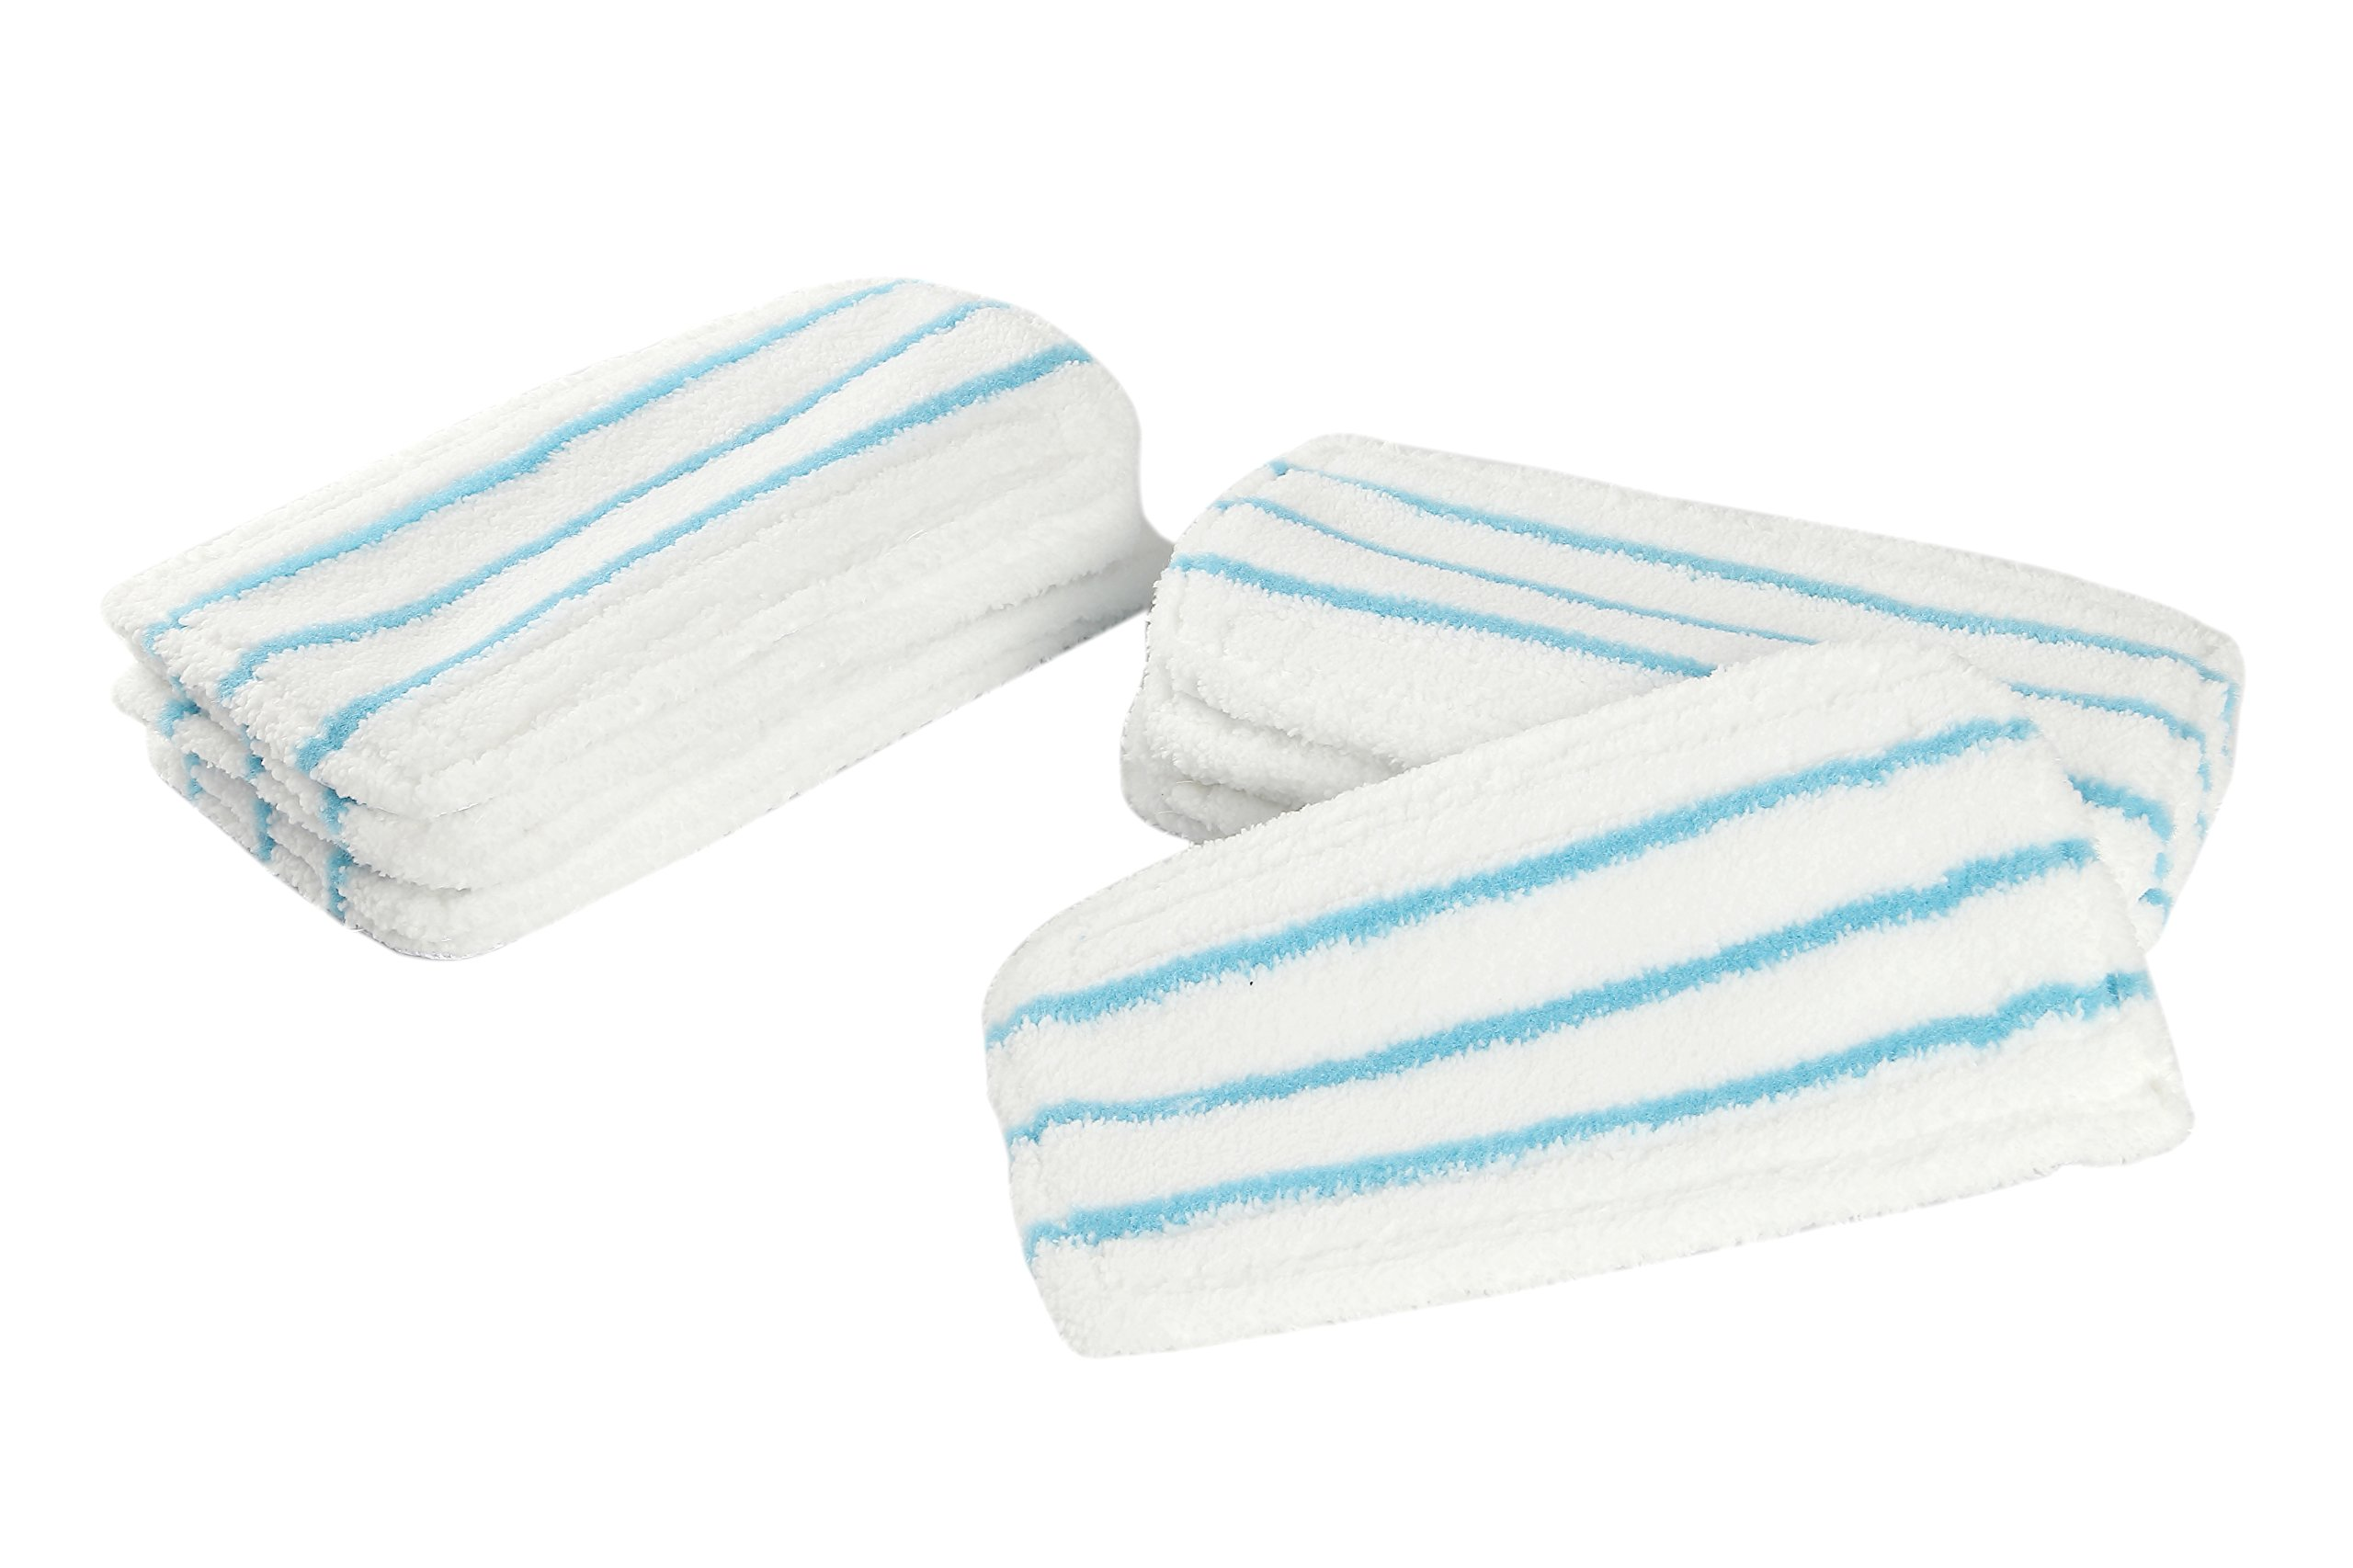 LTWHOME Microfiber Pads Fit for Black + Decker Steam Mop 1600 Series,HSMC1300FX HSMC1321 HSMC1361SGP,Compare to SMP20(Pack of 12) by LTWHOME